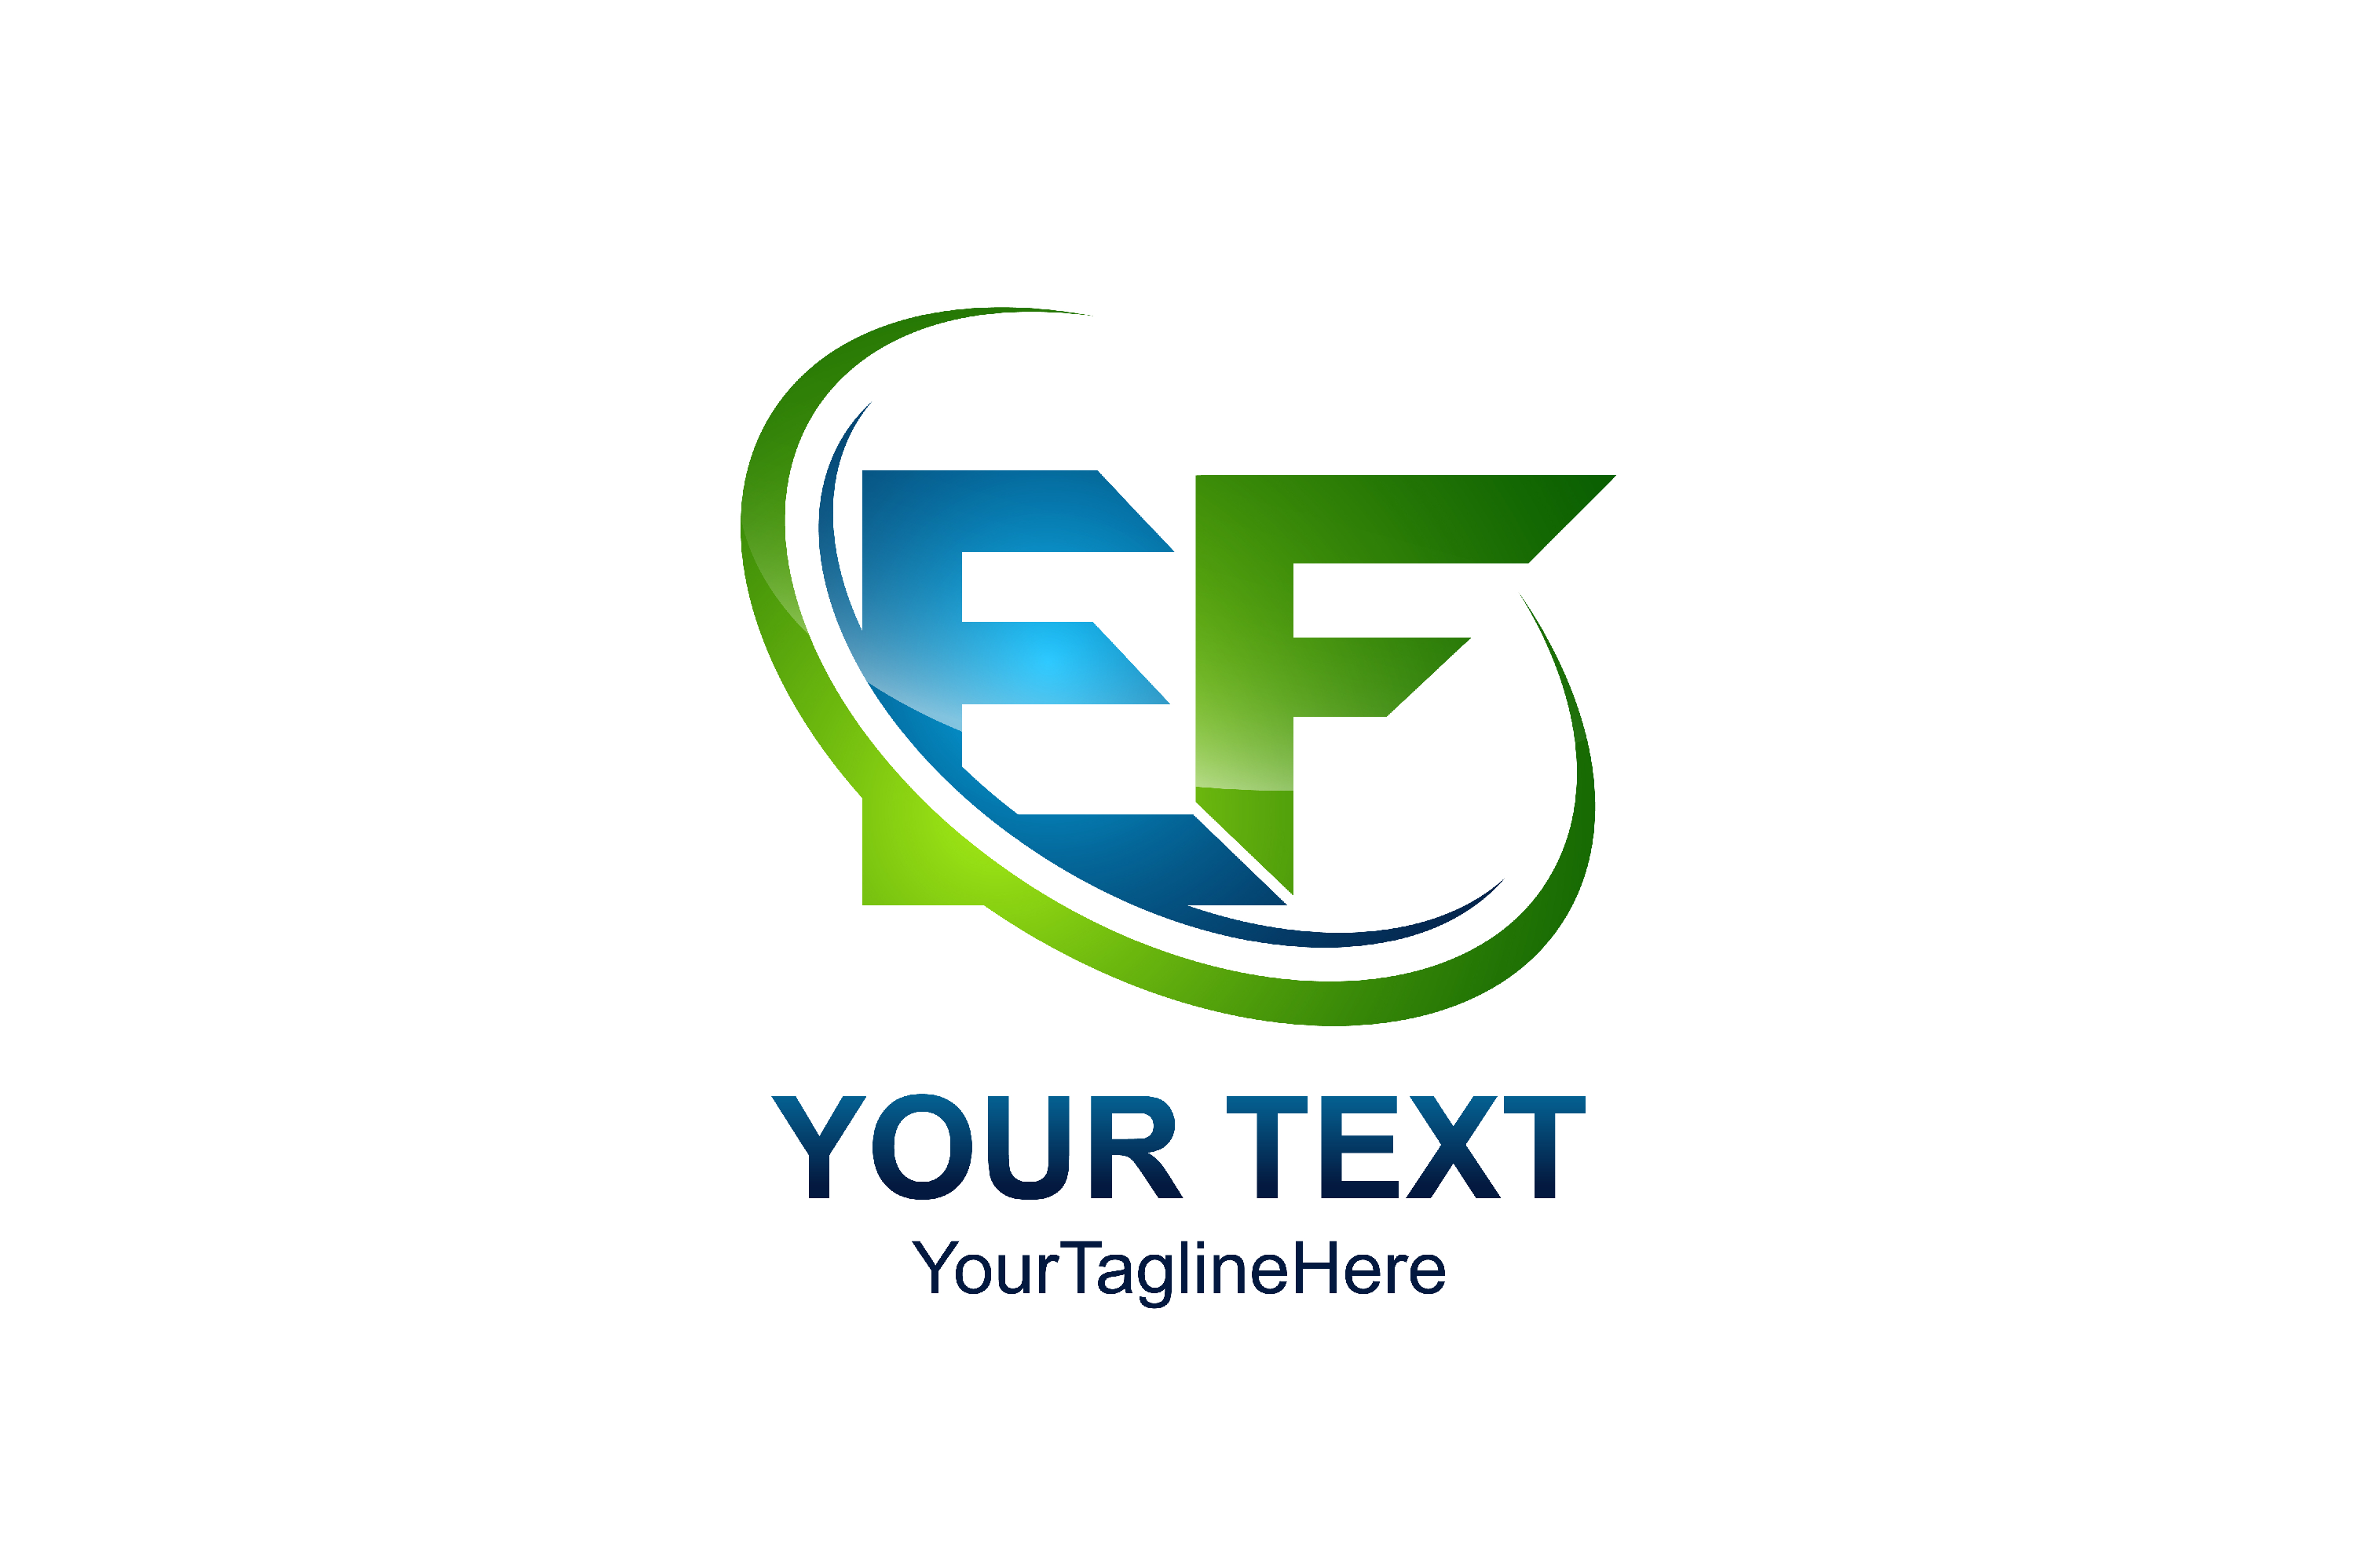 Download Free Initial Letter Ef Logo Template Colored Green Blue Swoosh Design for Cricut Explore, Silhouette and other cutting machines.